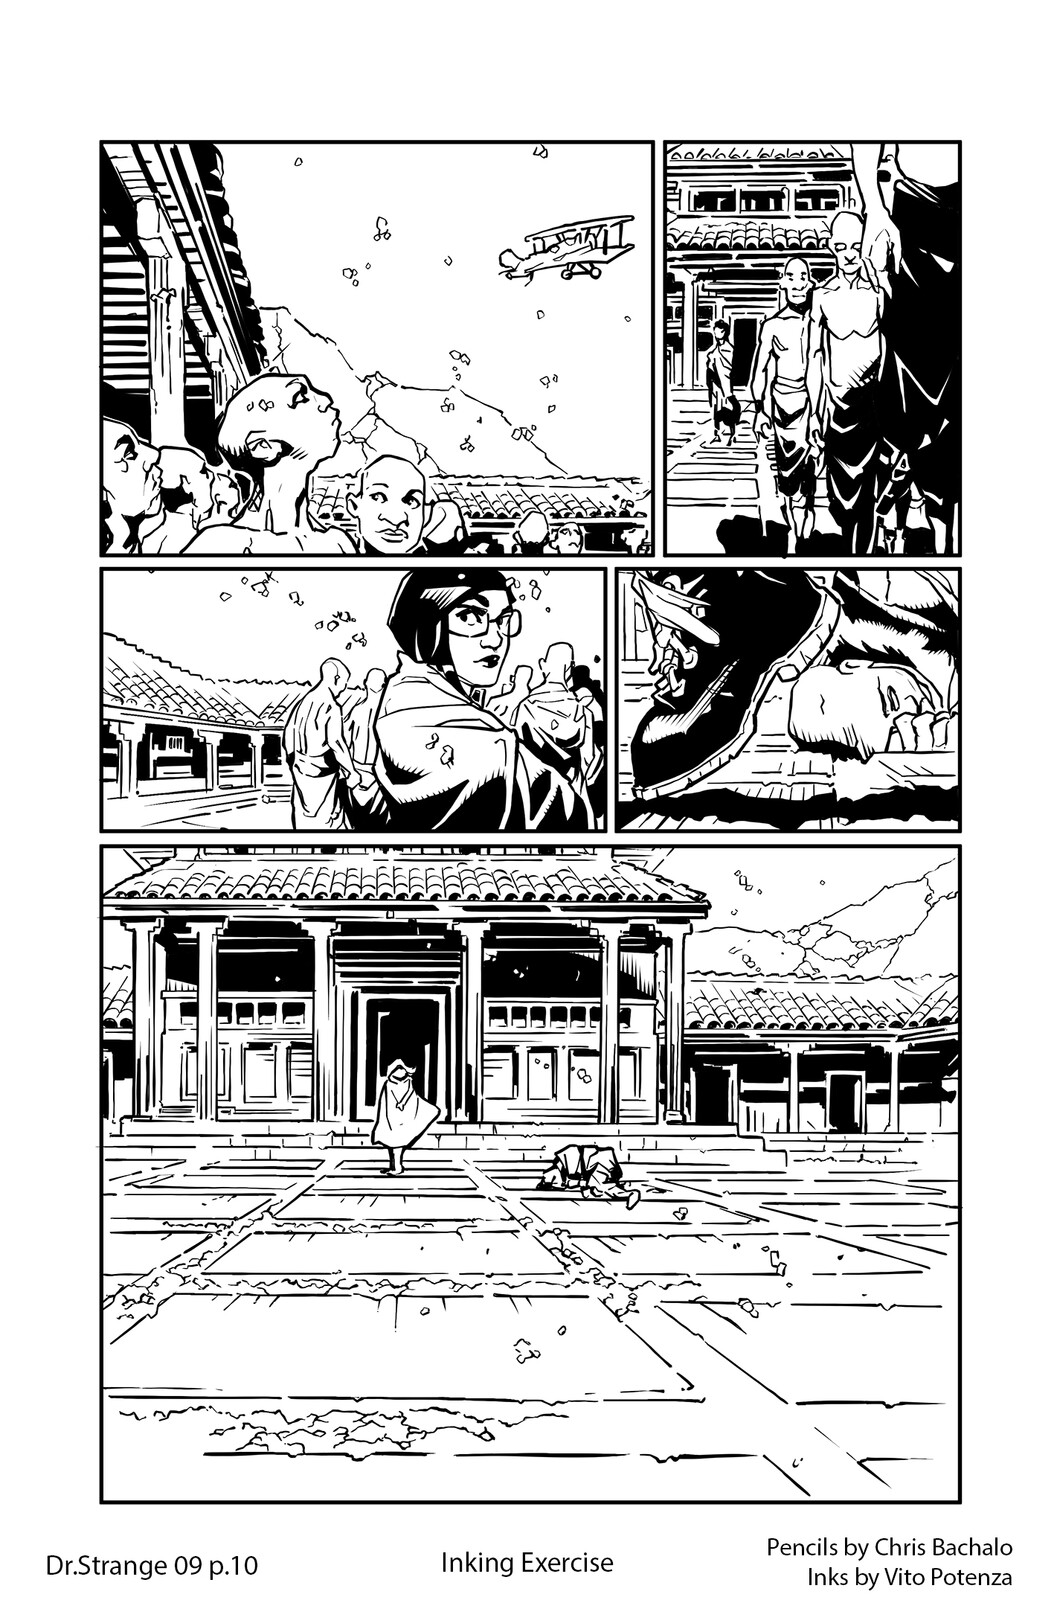 Dr.Strange #09 - page 10 Pencils by Chris Bachalo | Inking by me